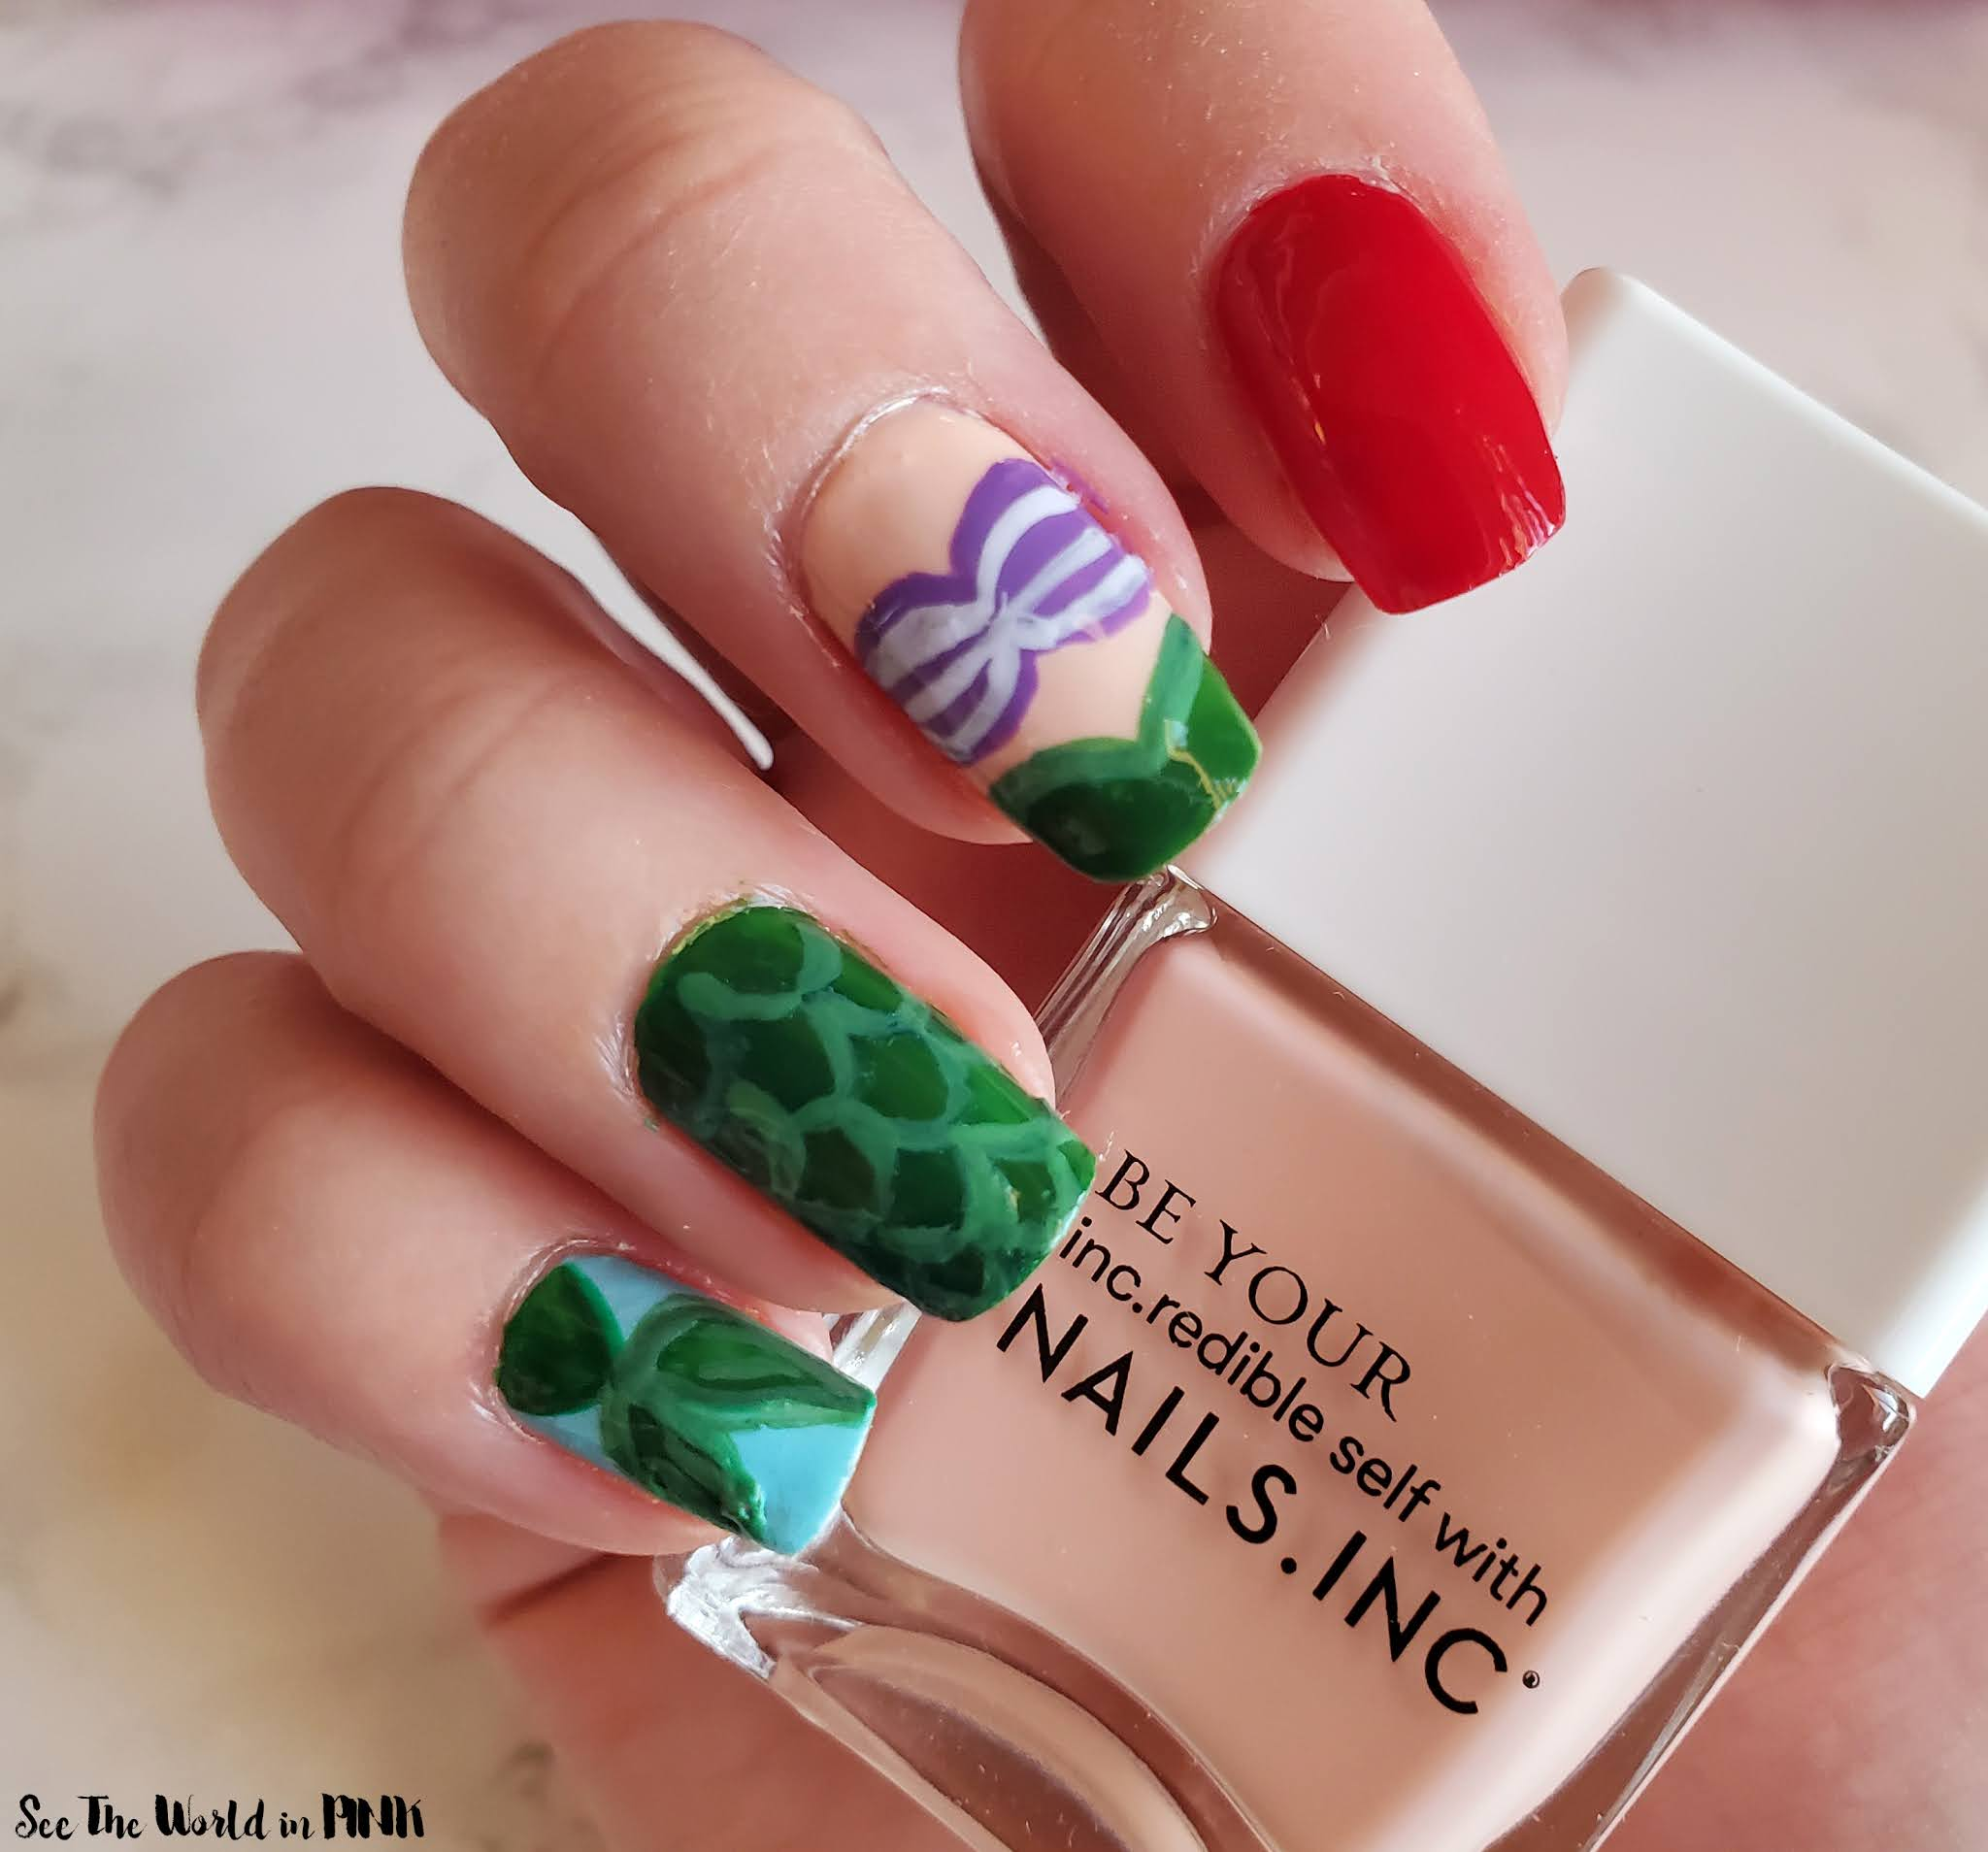 Manicure Monday - The Little Mermaid Ariel Nail Art